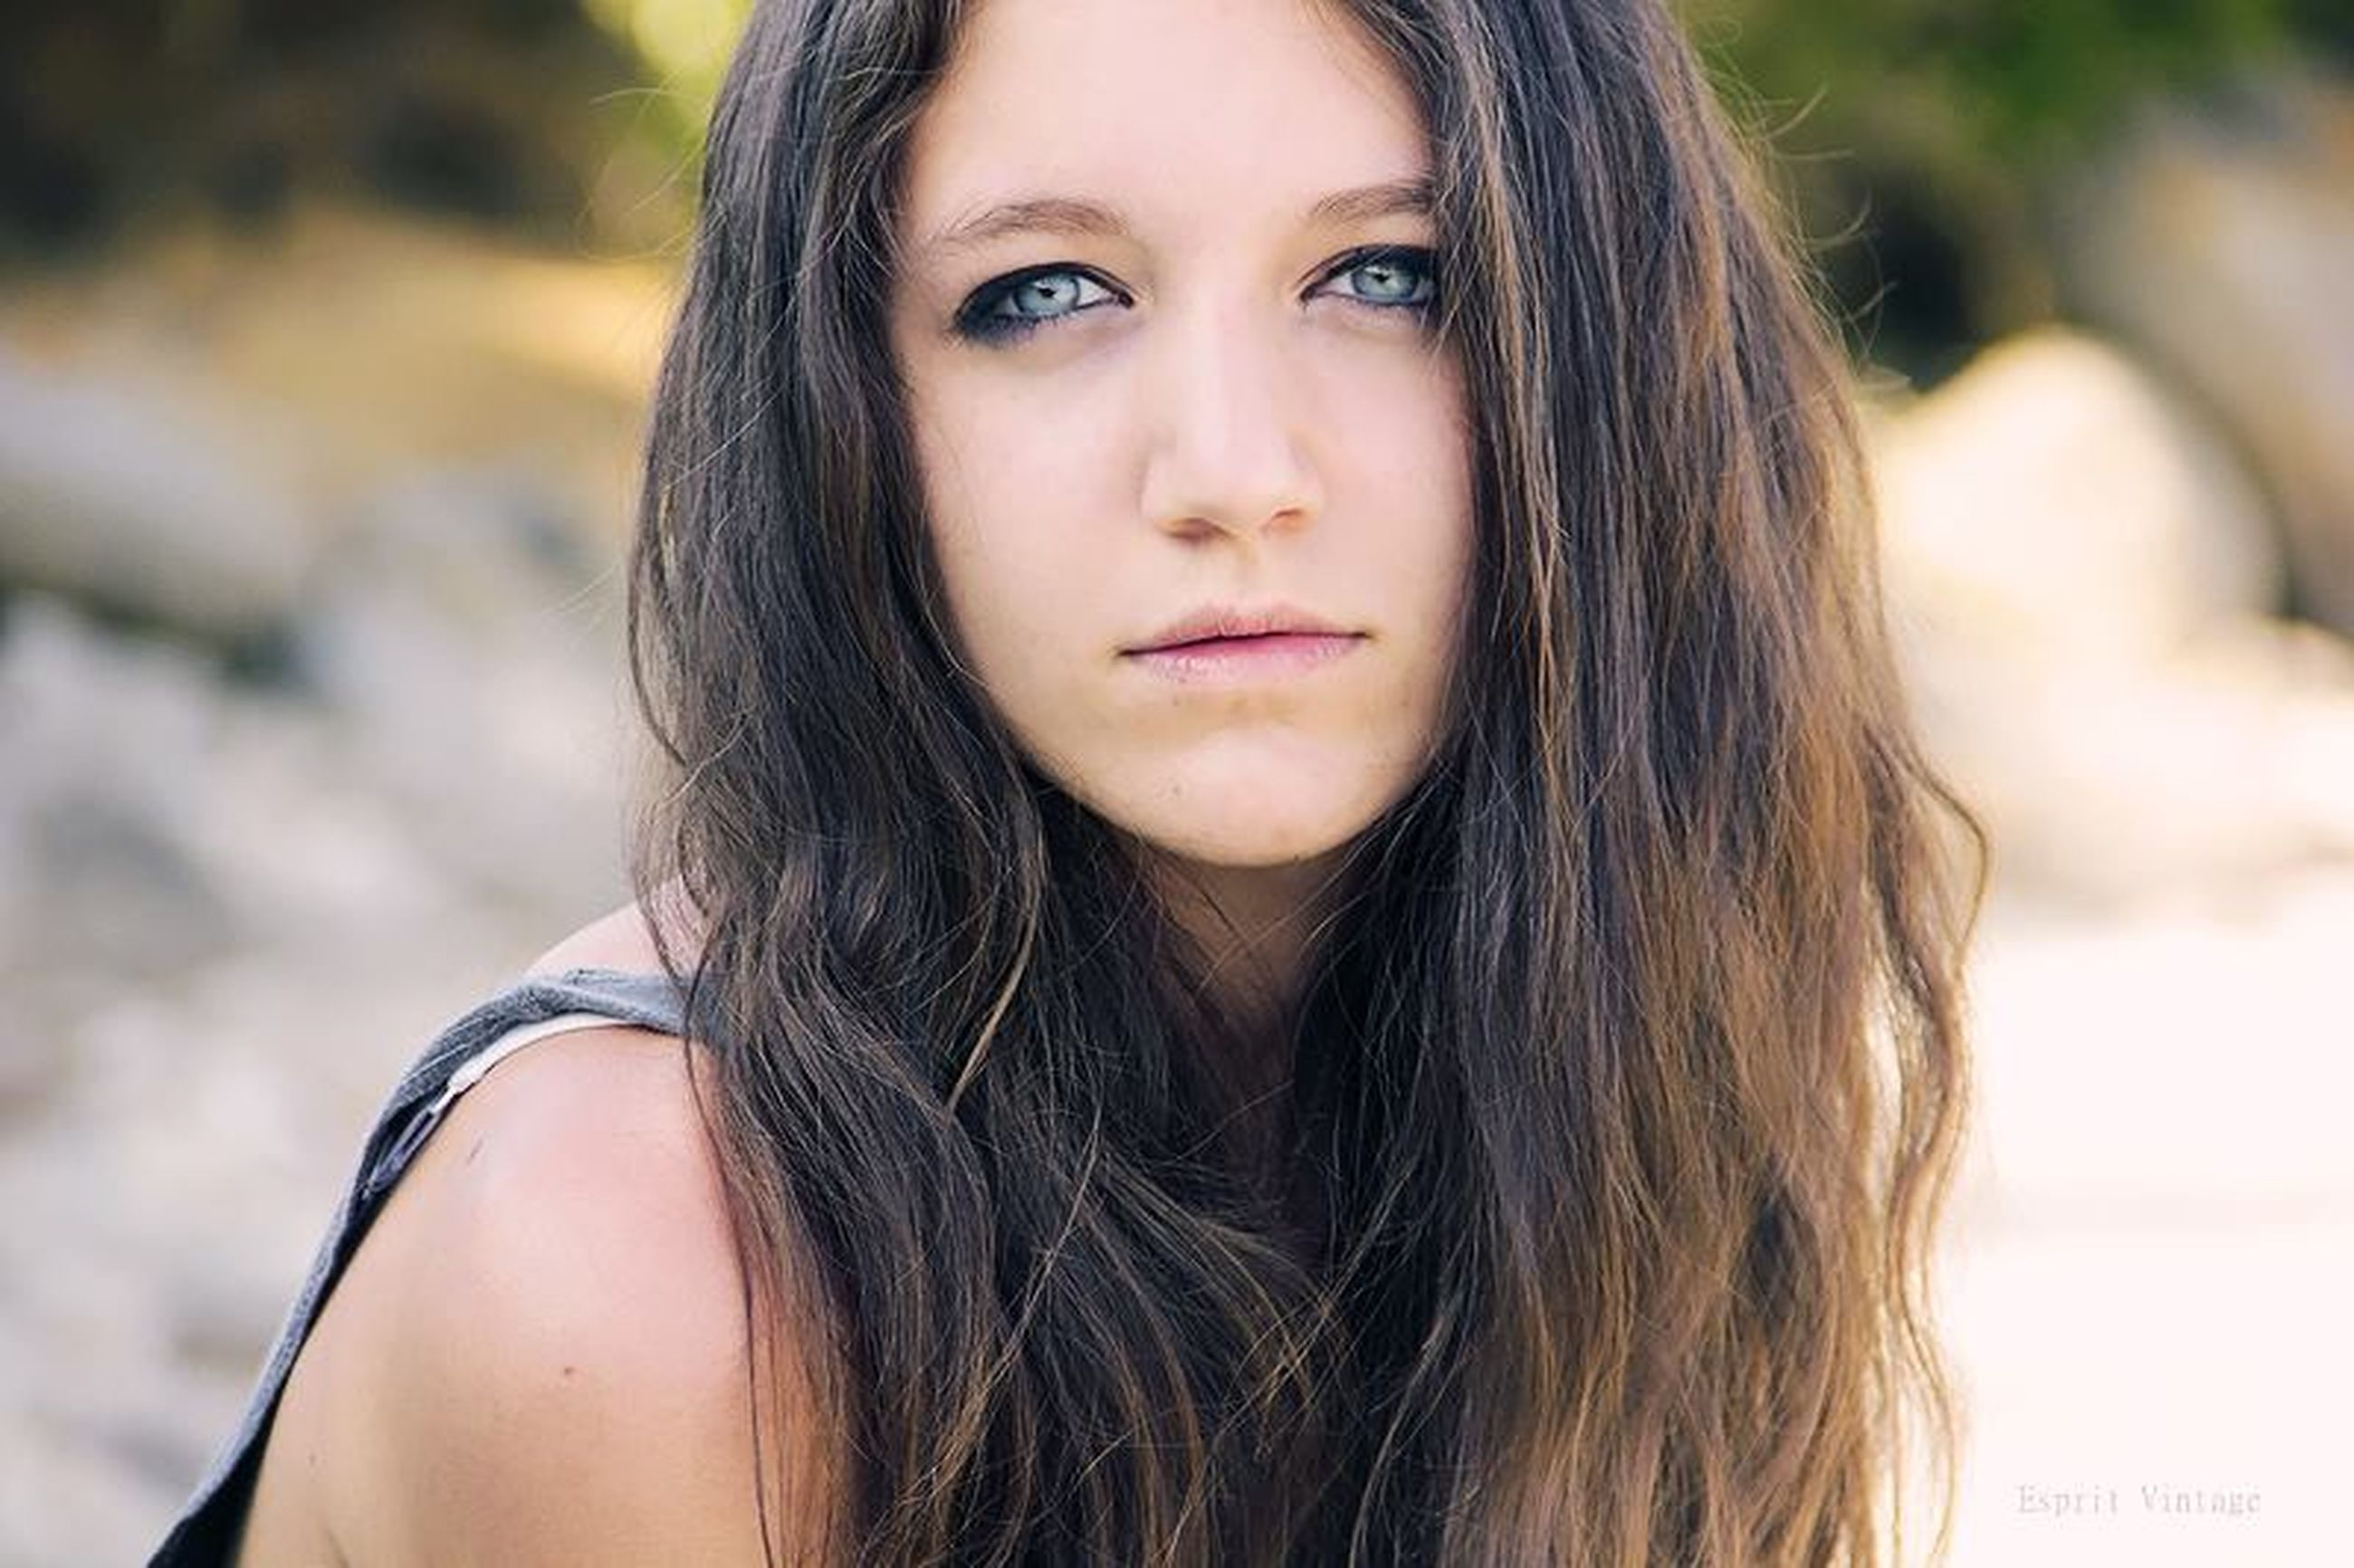 young women, long hair, young adult, lifestyles, headshot, focus on foreground, person, portrait, looking at camera, brown hair, beauty, close-up, leisure activity, front view, black hair, femininity